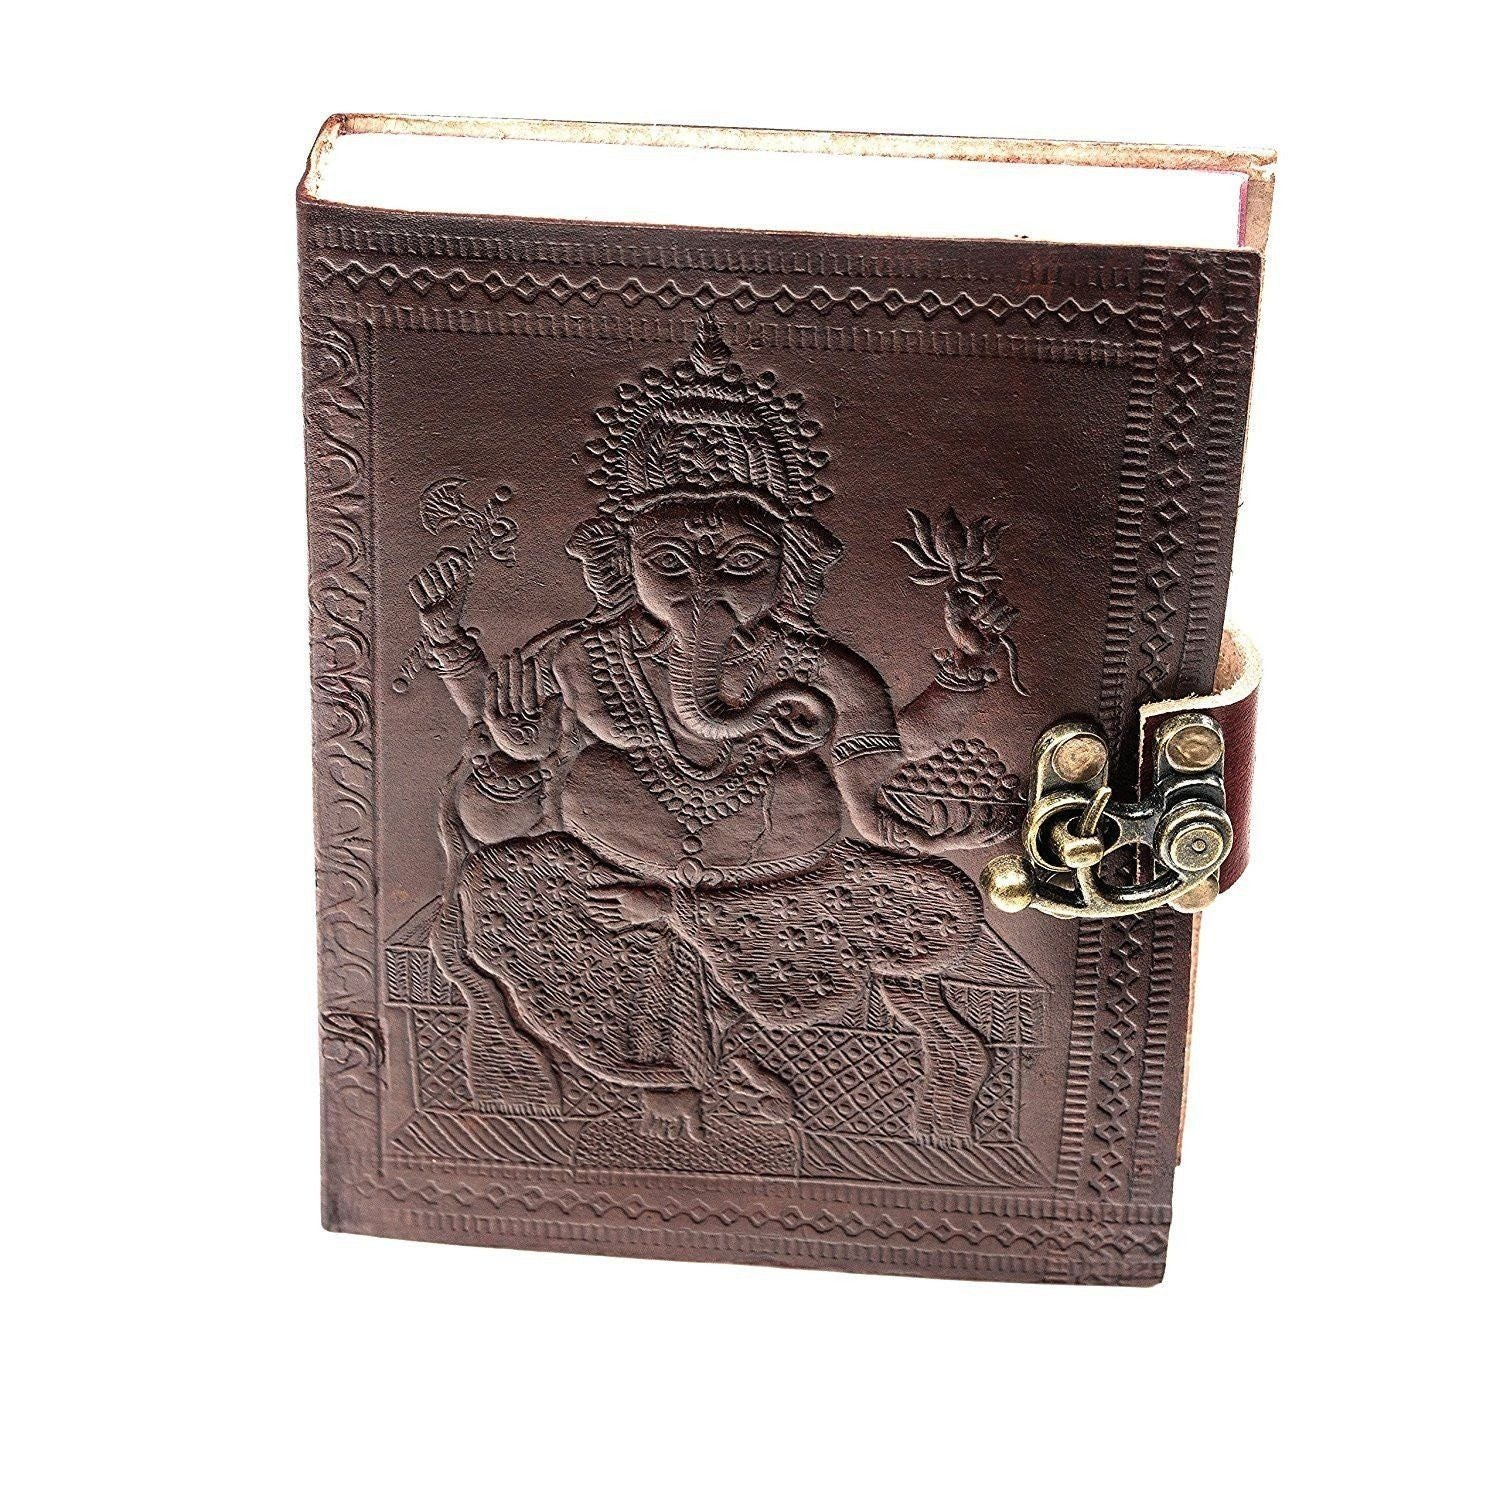 ININDIA Pure Genuine Real Vintage Leather Handmadepaper Notebook Diary For office Home to Write Poem Daily Update - Brown Size of 10 Inches The Immart